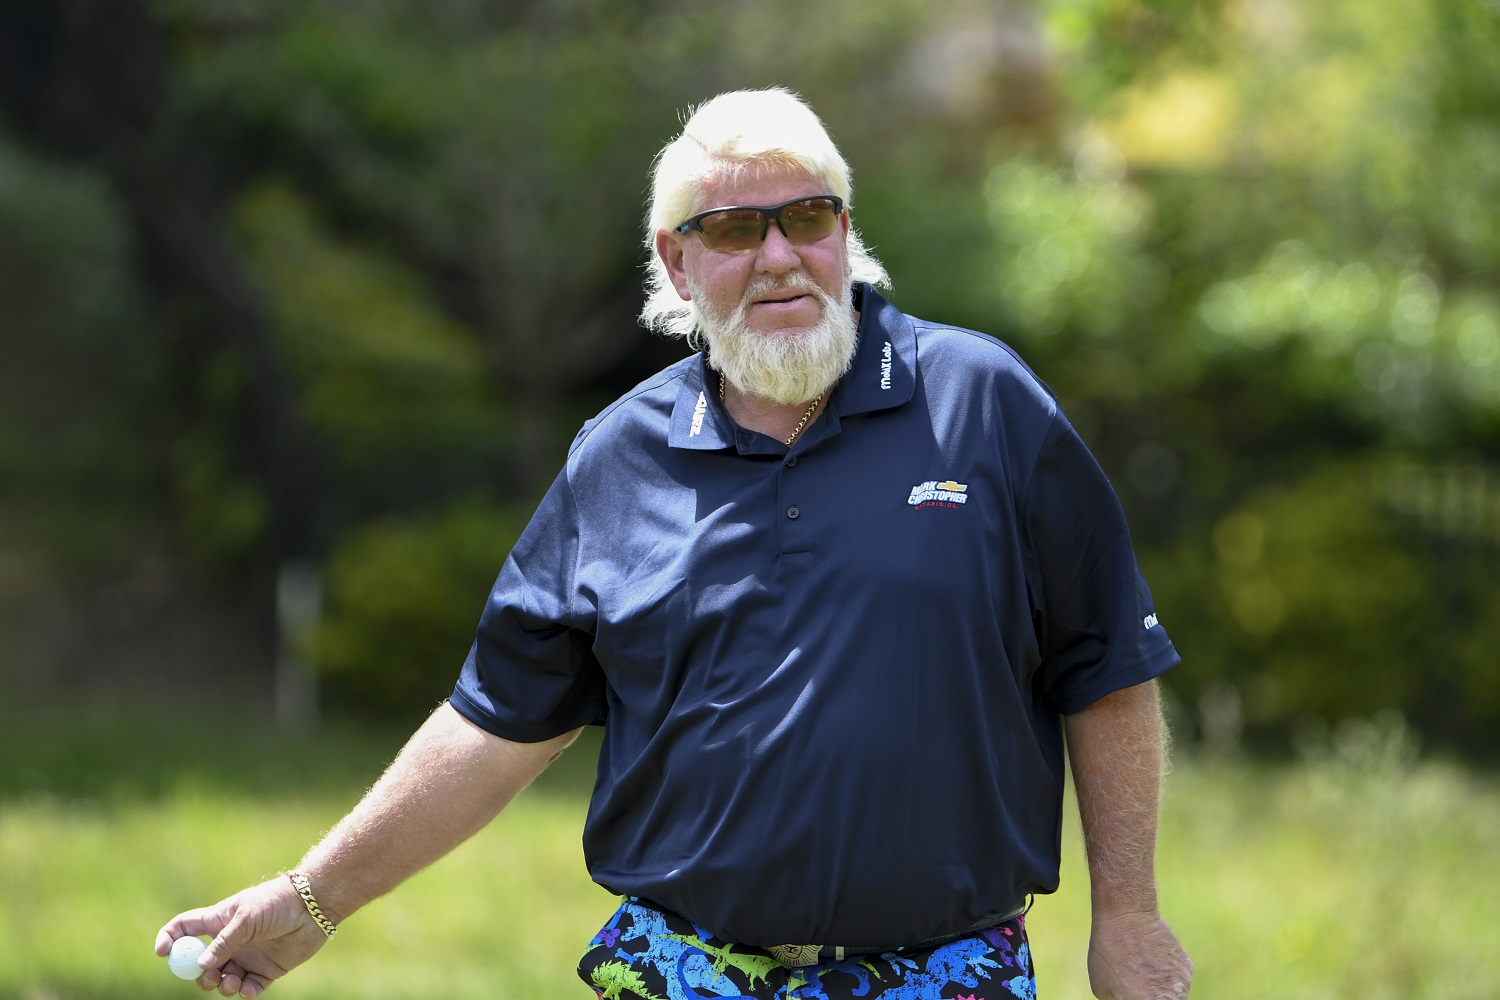 John Daly Spent $30,000 in the Most Heartwarming Way After His 1991 PGA Championship Victory